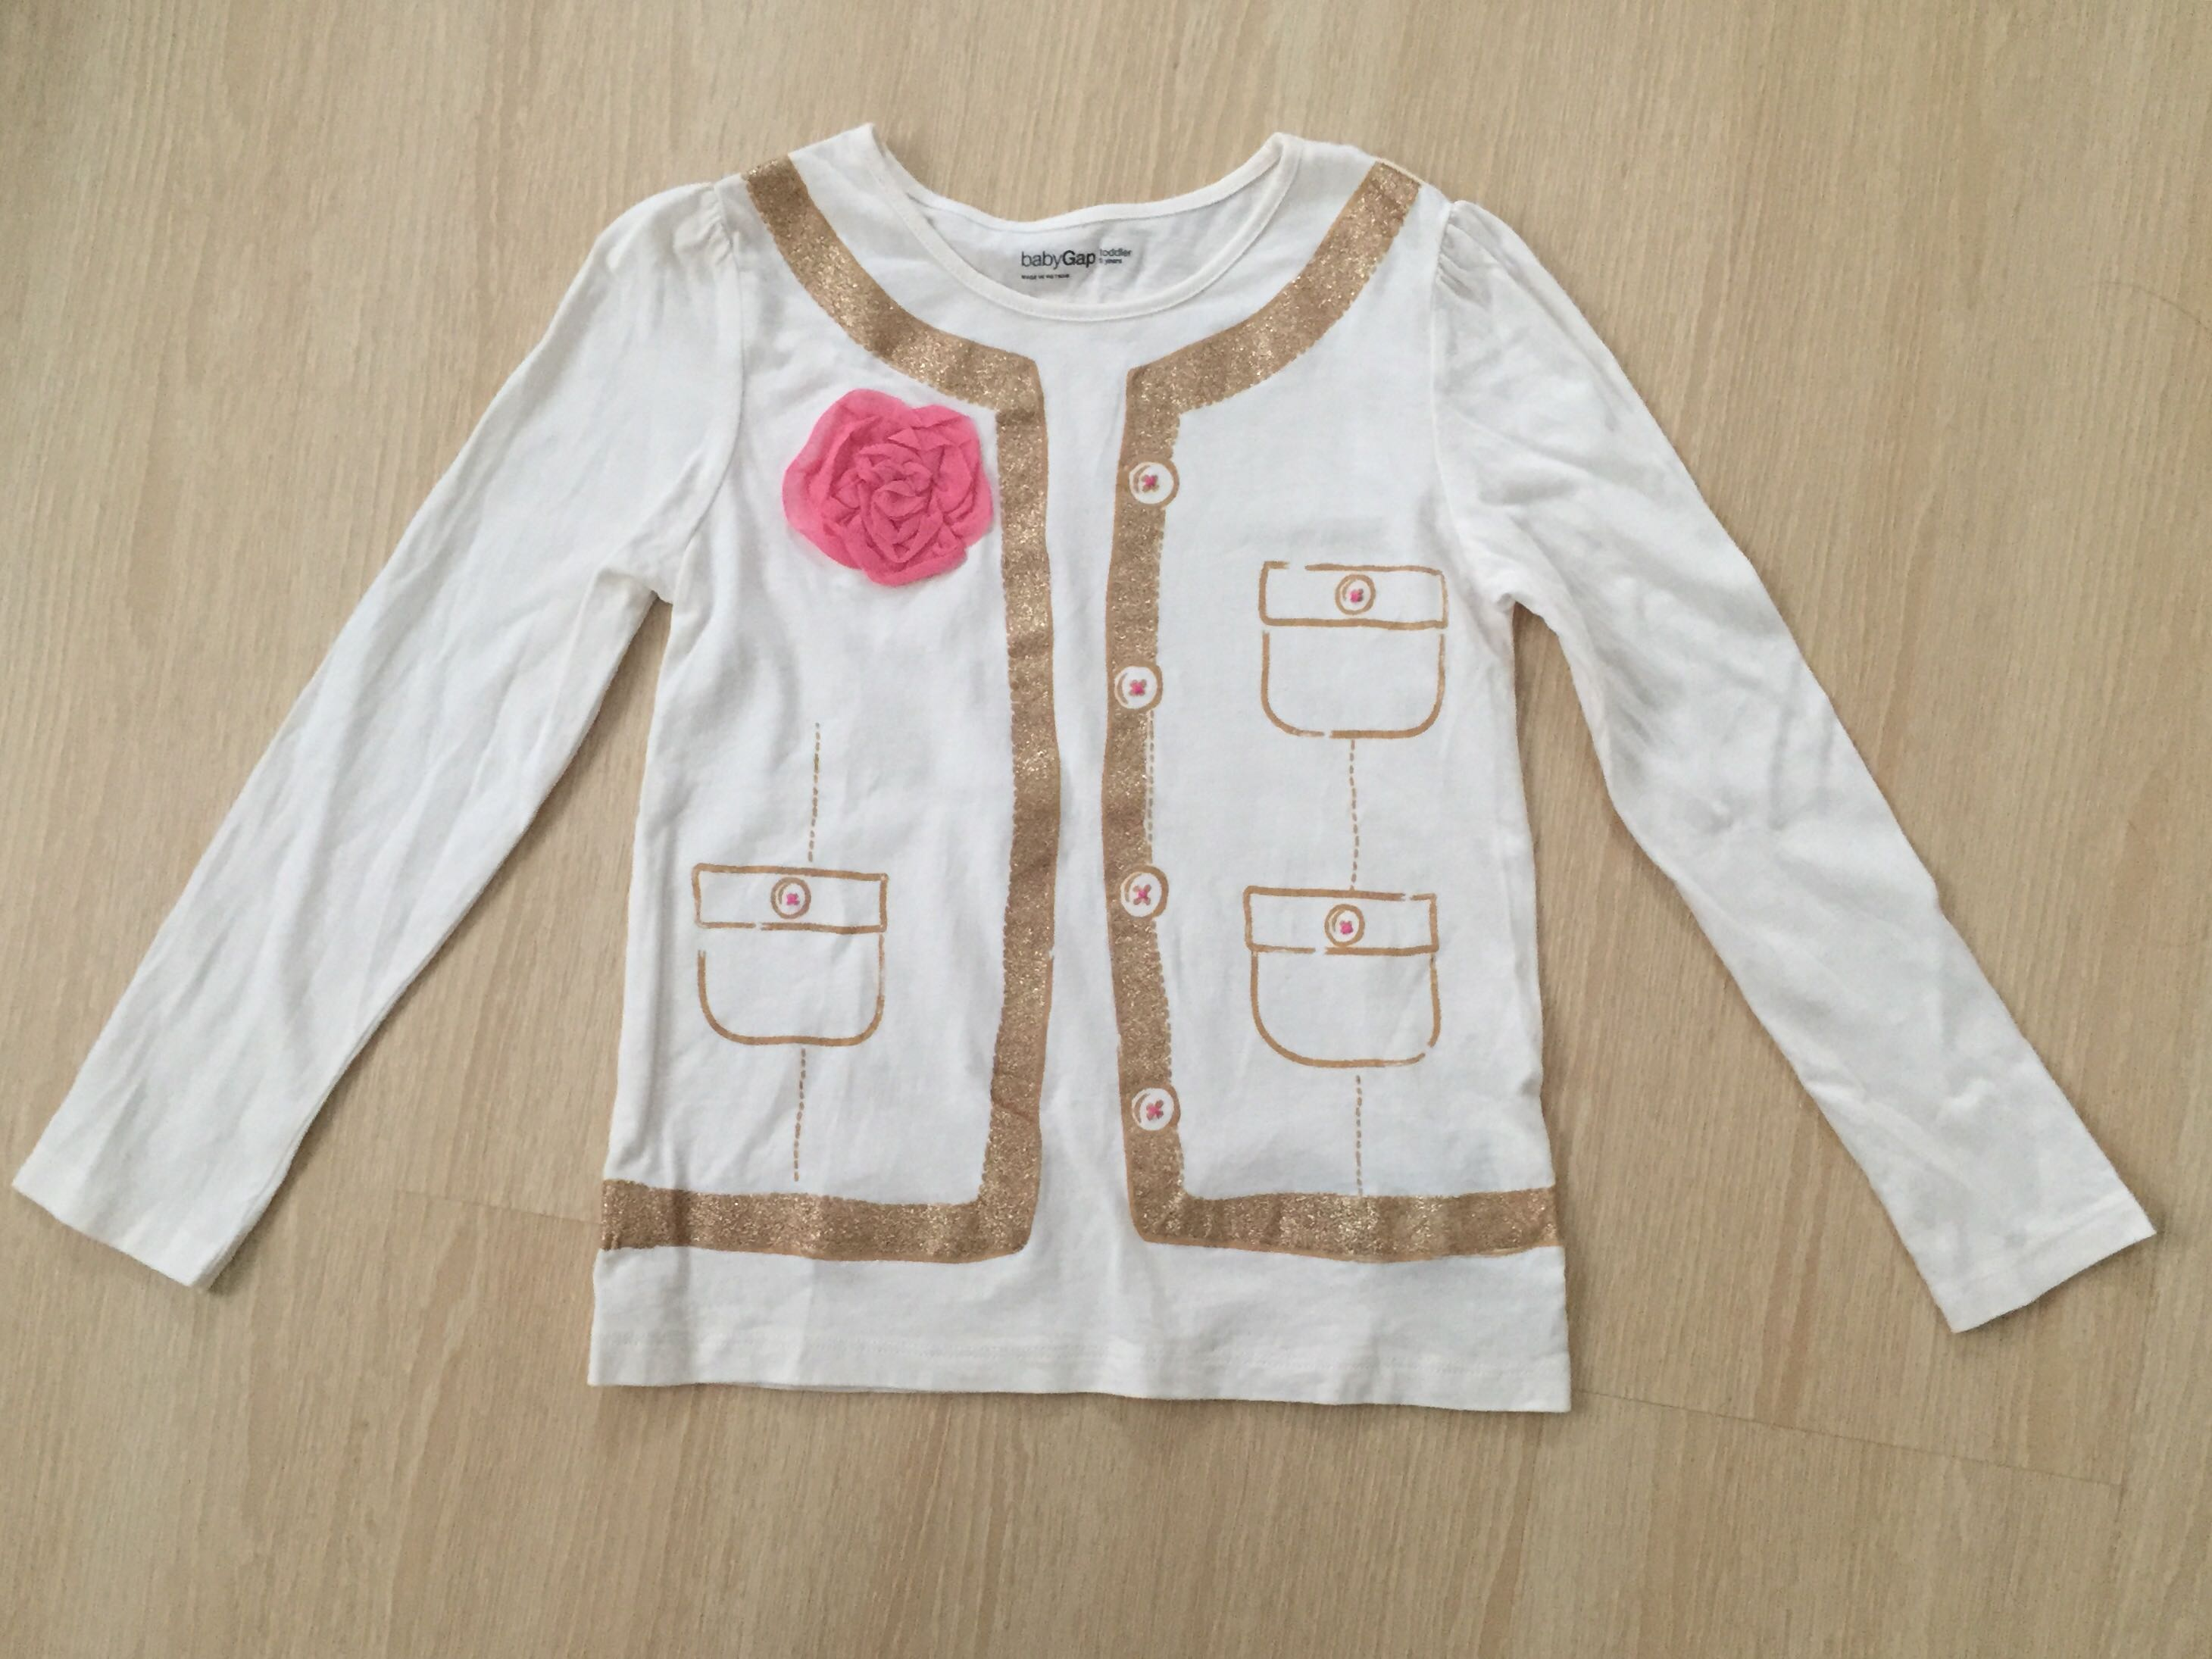 Gap Girl Long sleeves Tshirt Babies & Kids Girls Apparel on Carousell